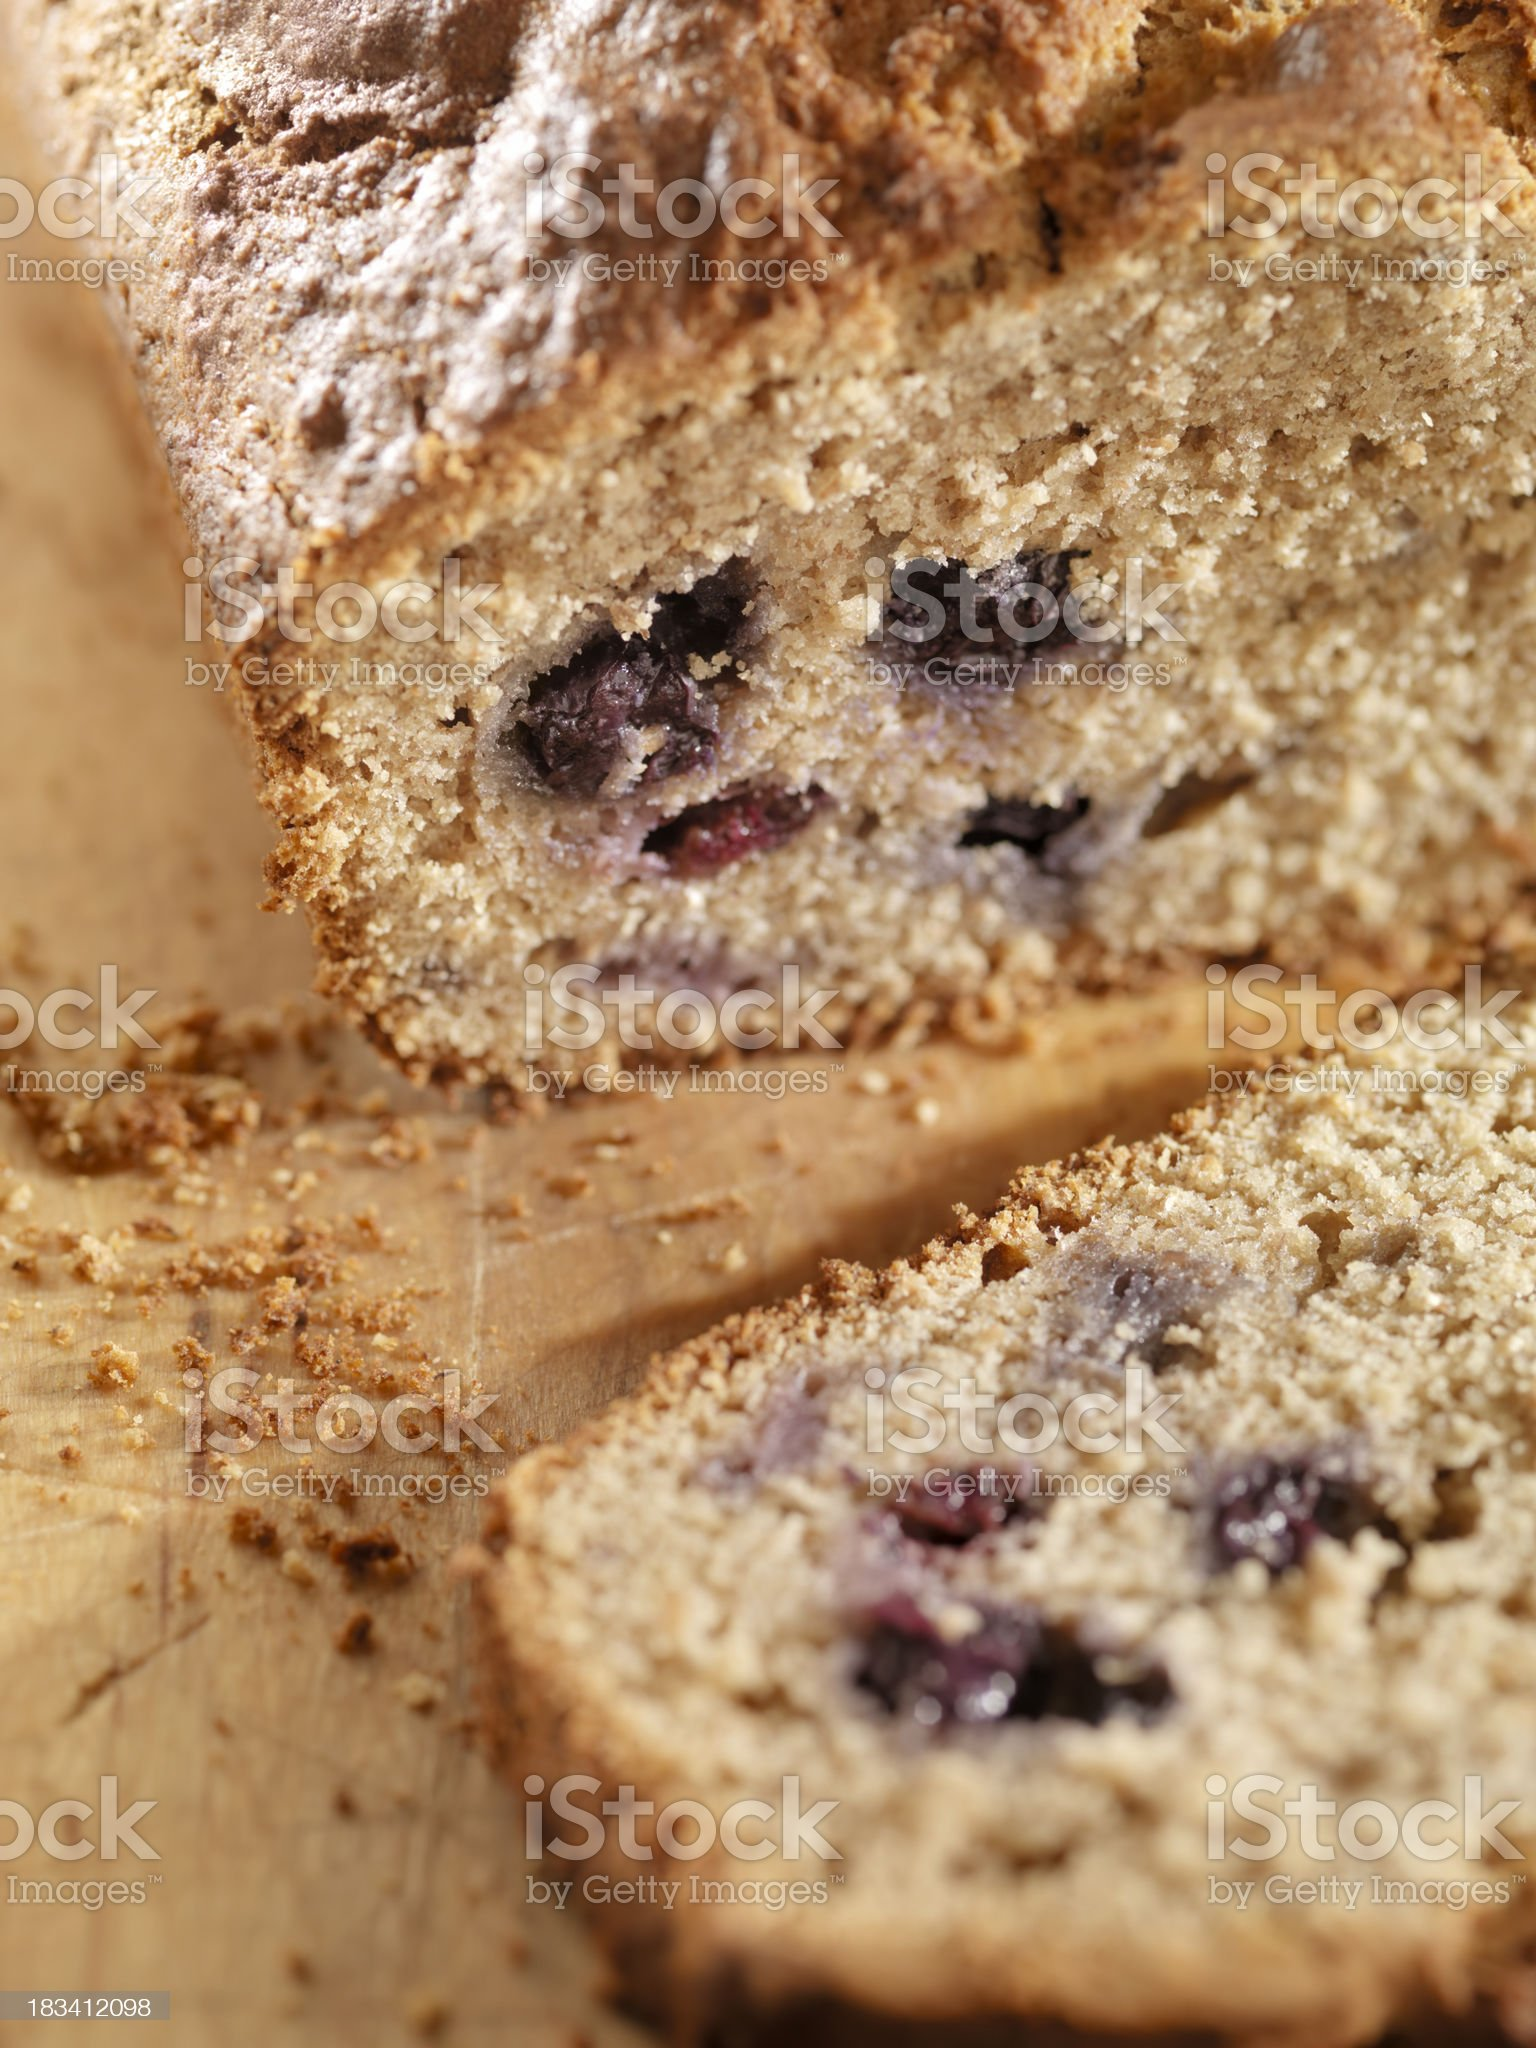 Gluten free Banana Bread with Blueberries royalty-free stock photo